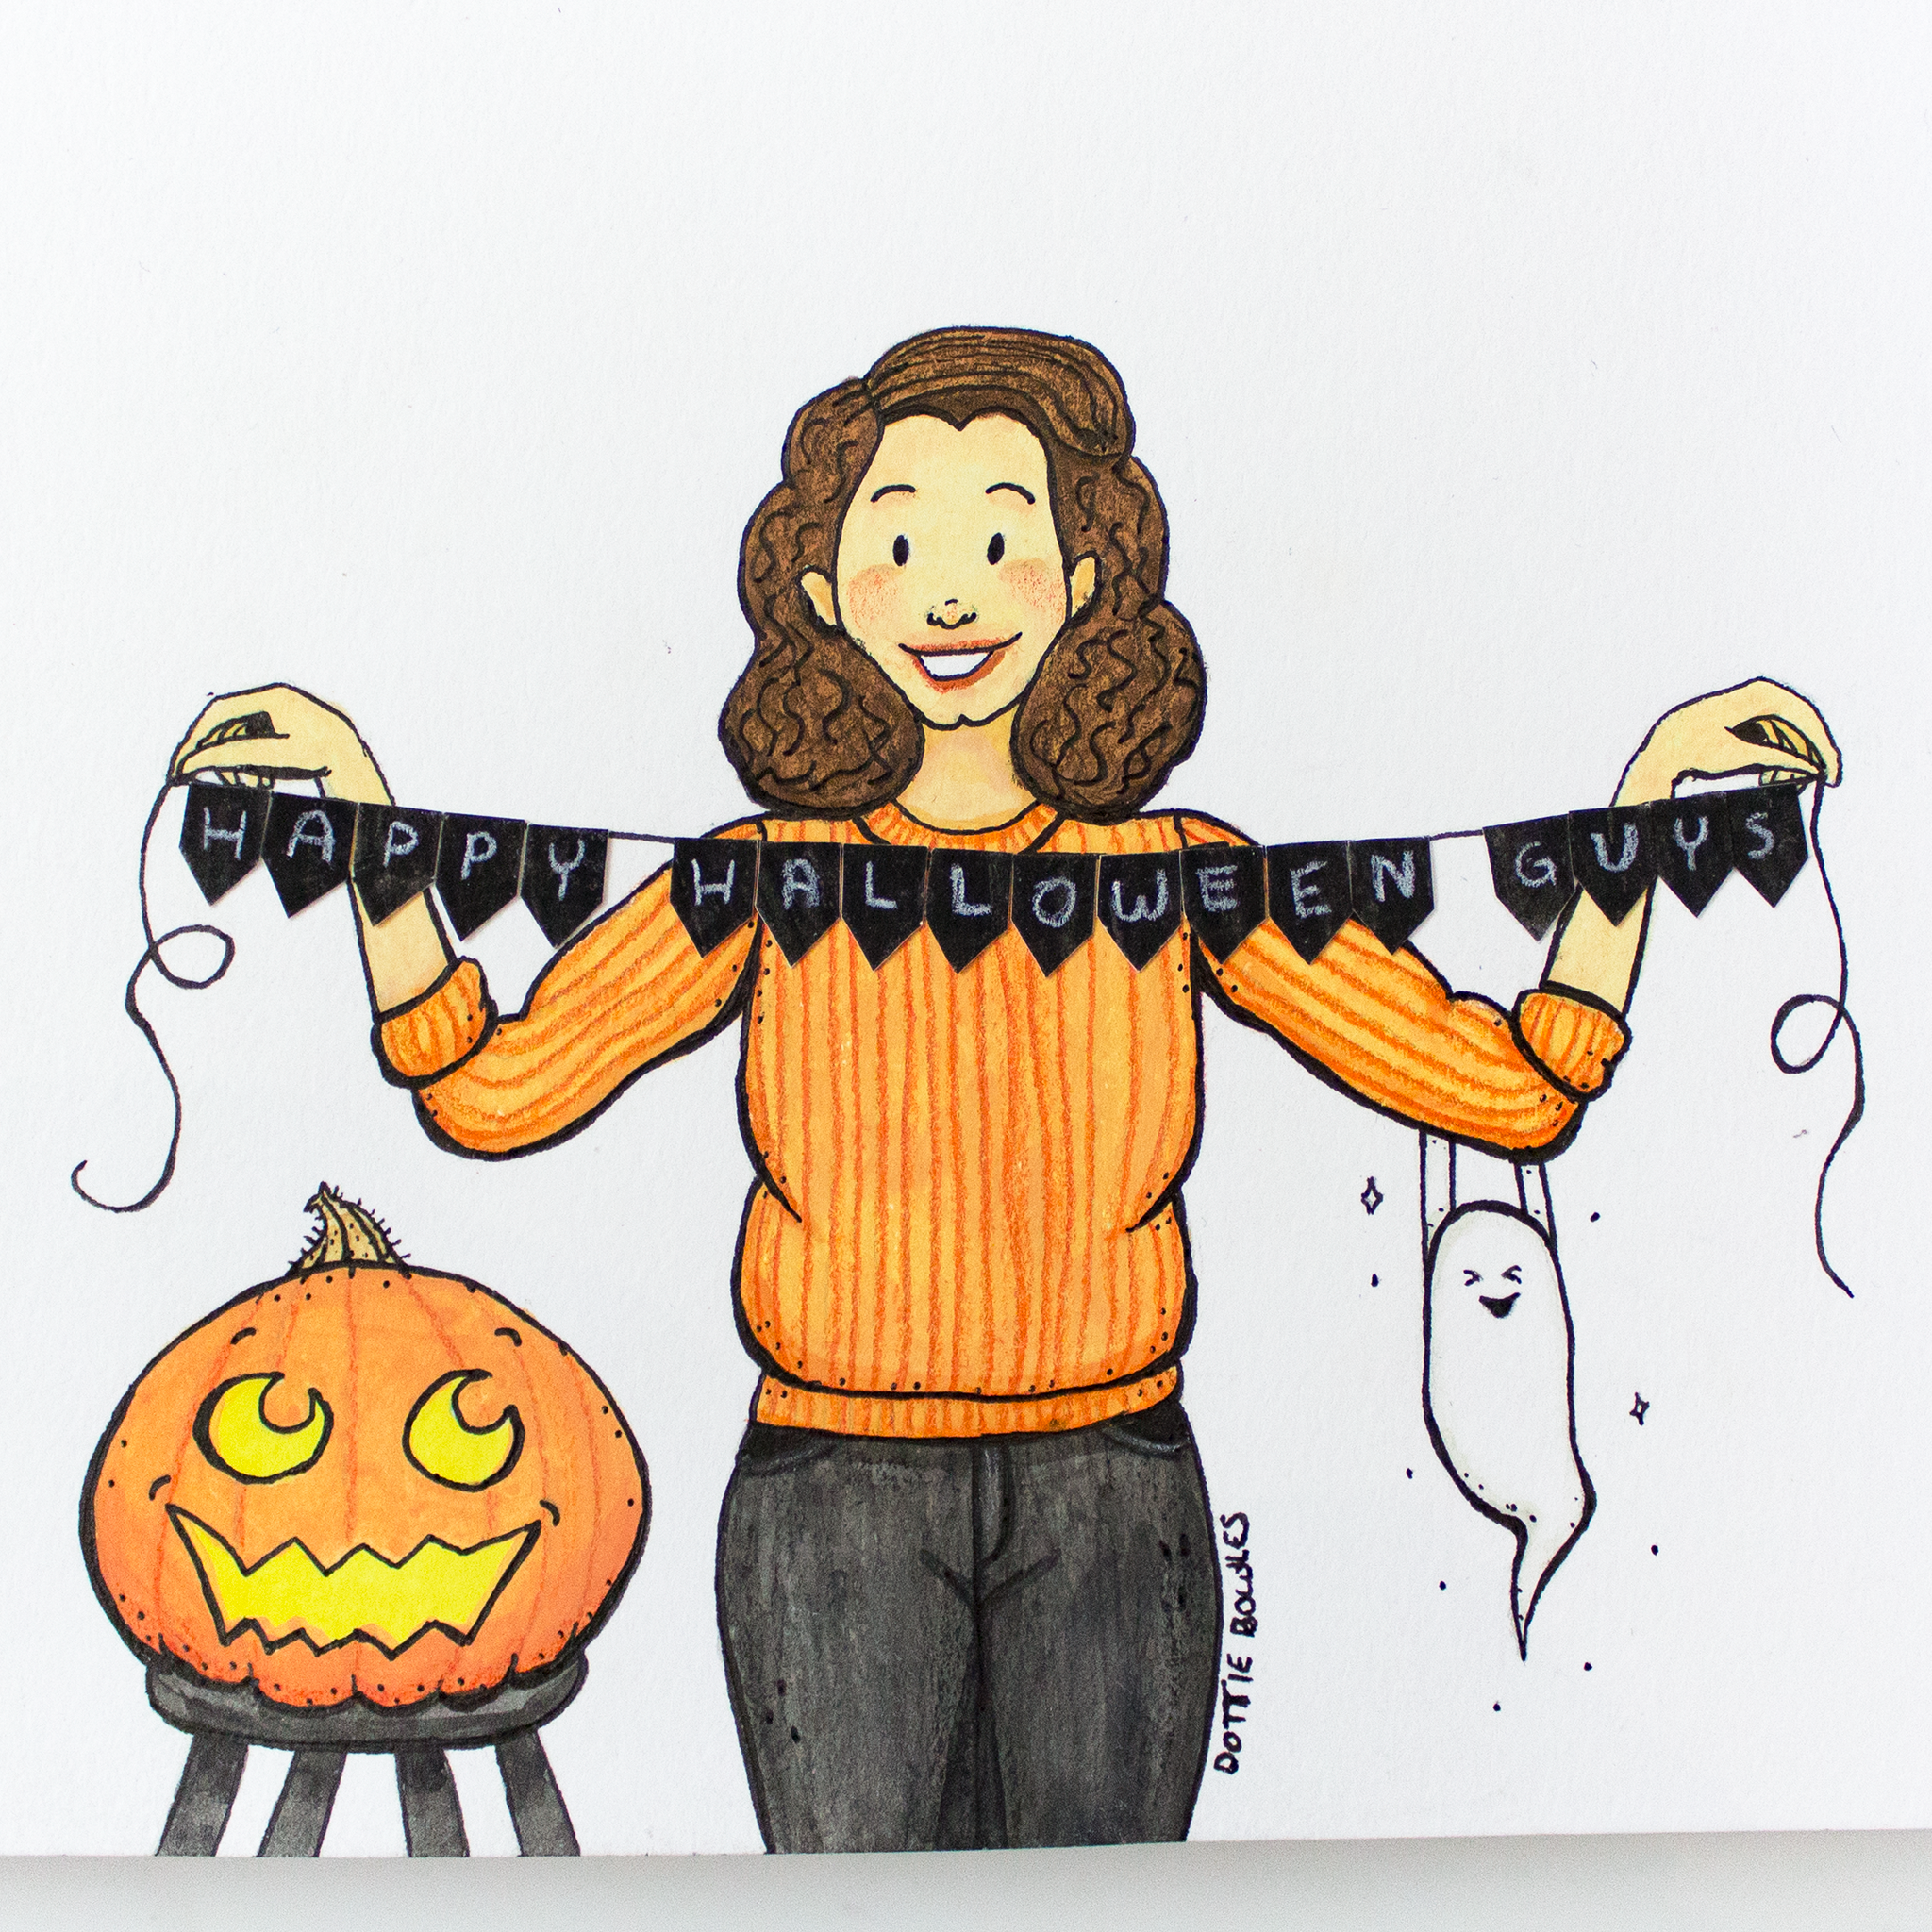 Inktober 2018 Day 31 Happy Halloween Guys by Dottie Bowles